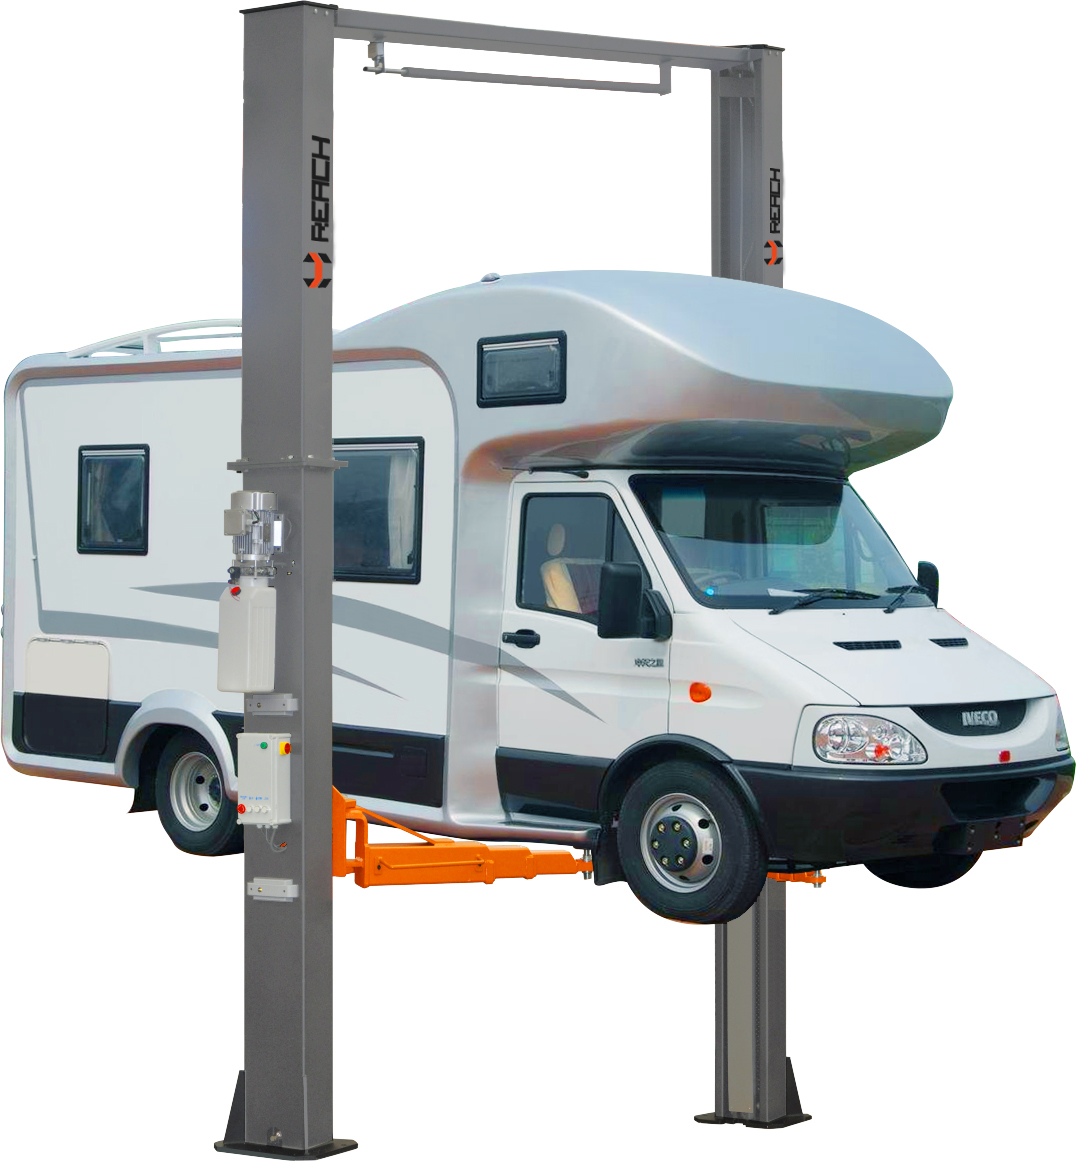 6 Tons two post truck lift for service station Featured Image